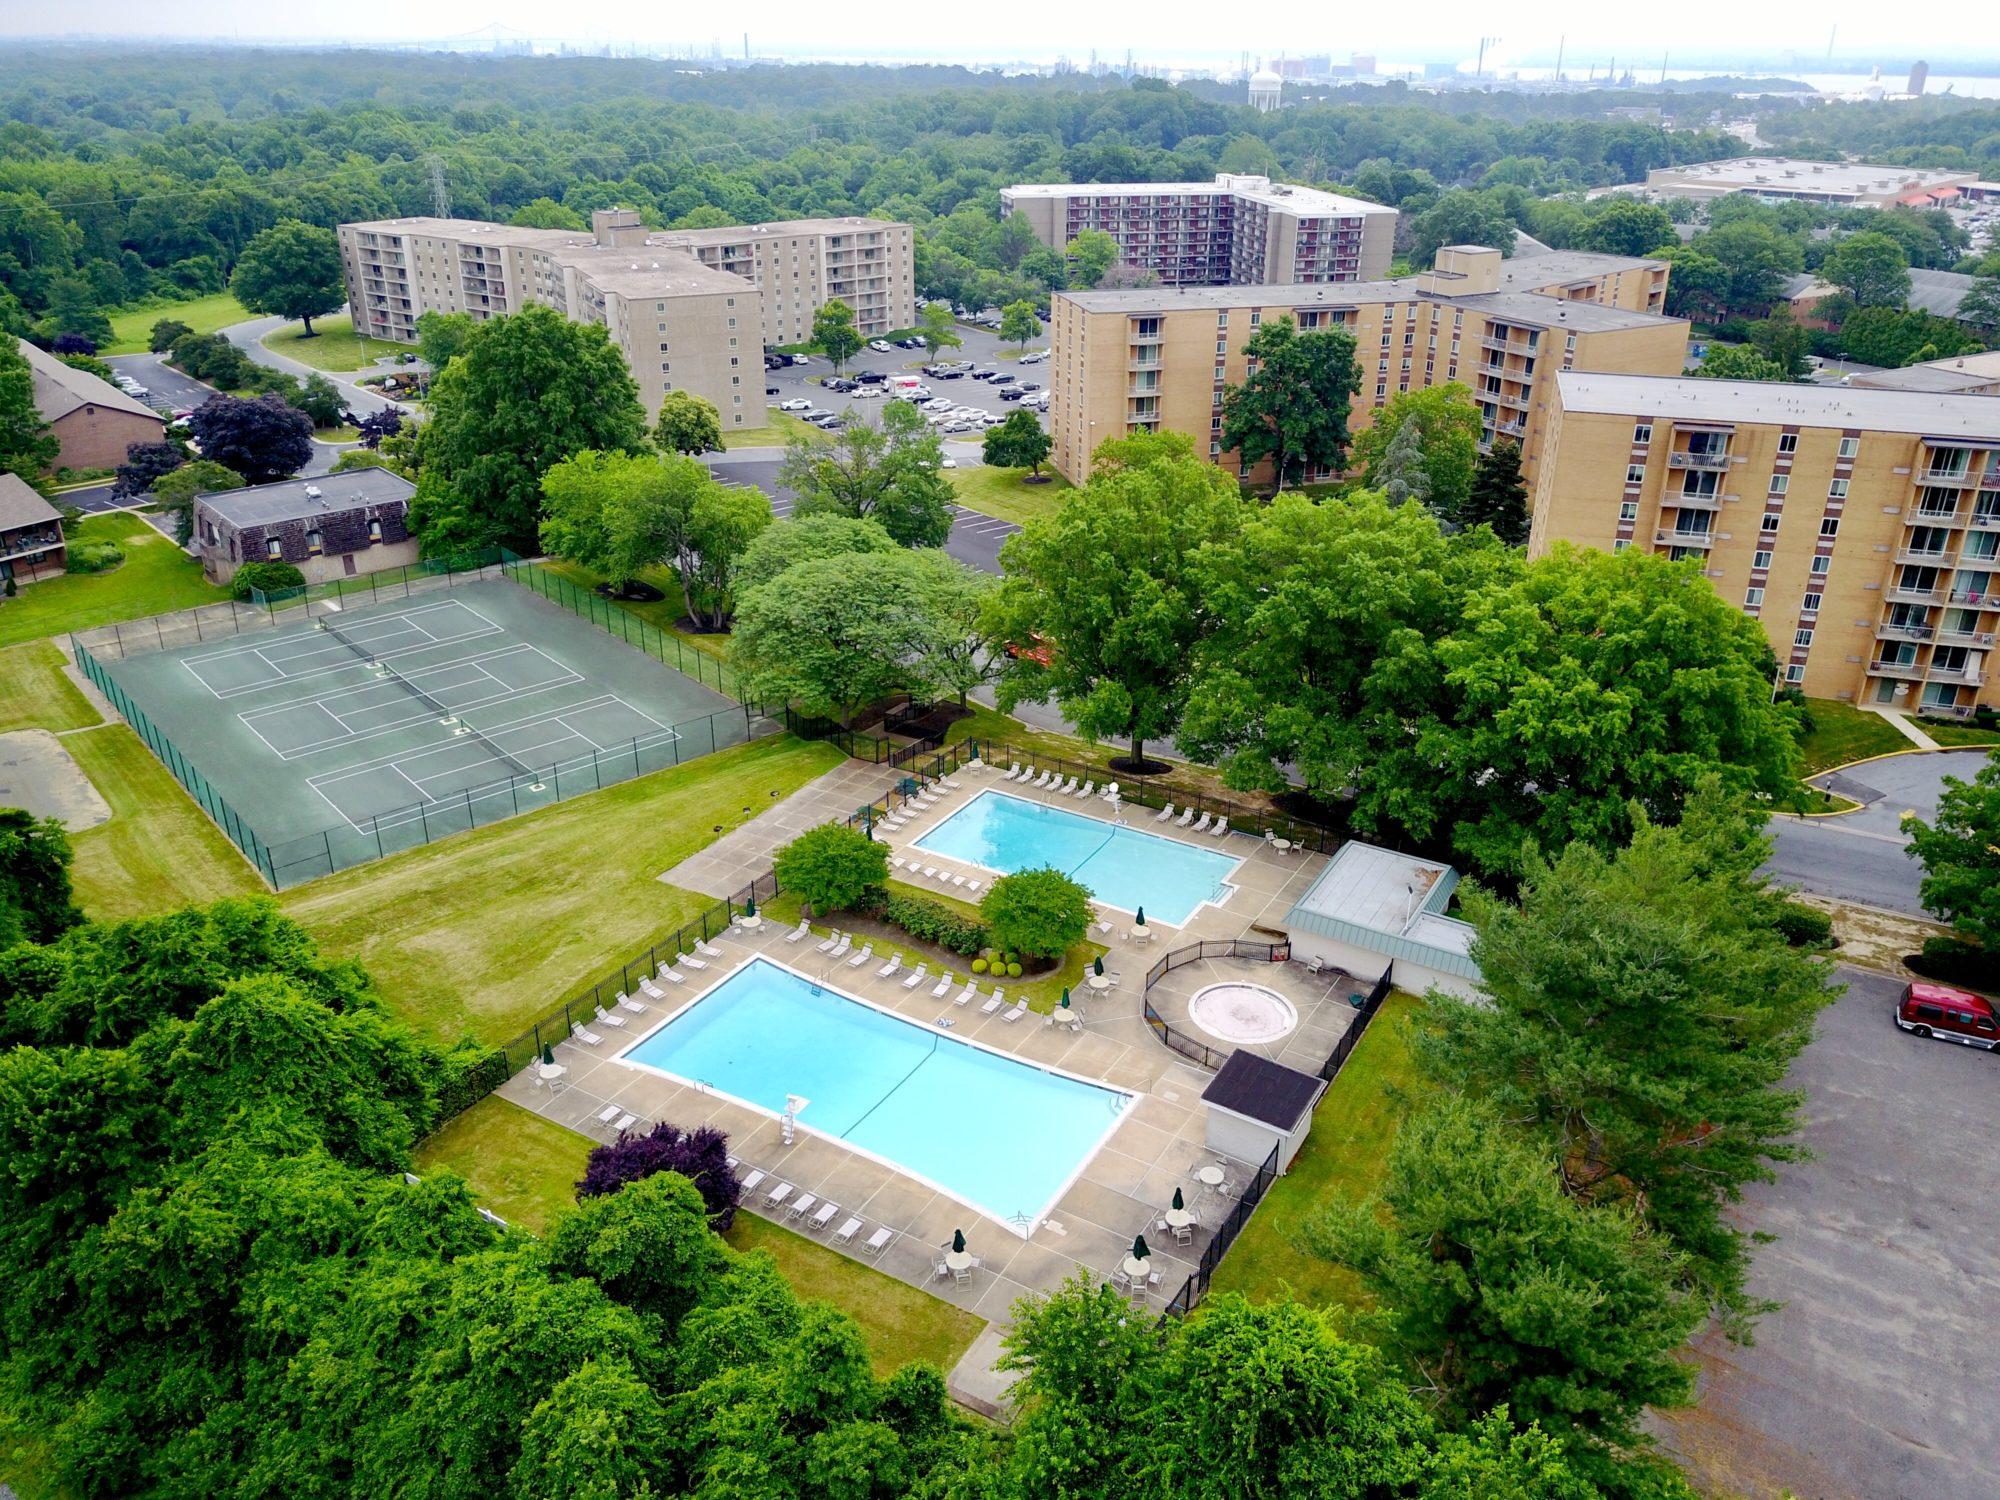 bird's-eye-view of two swimming pools, tennis courts and high-rise buildings at the Whitney Apartments in Claymont DE